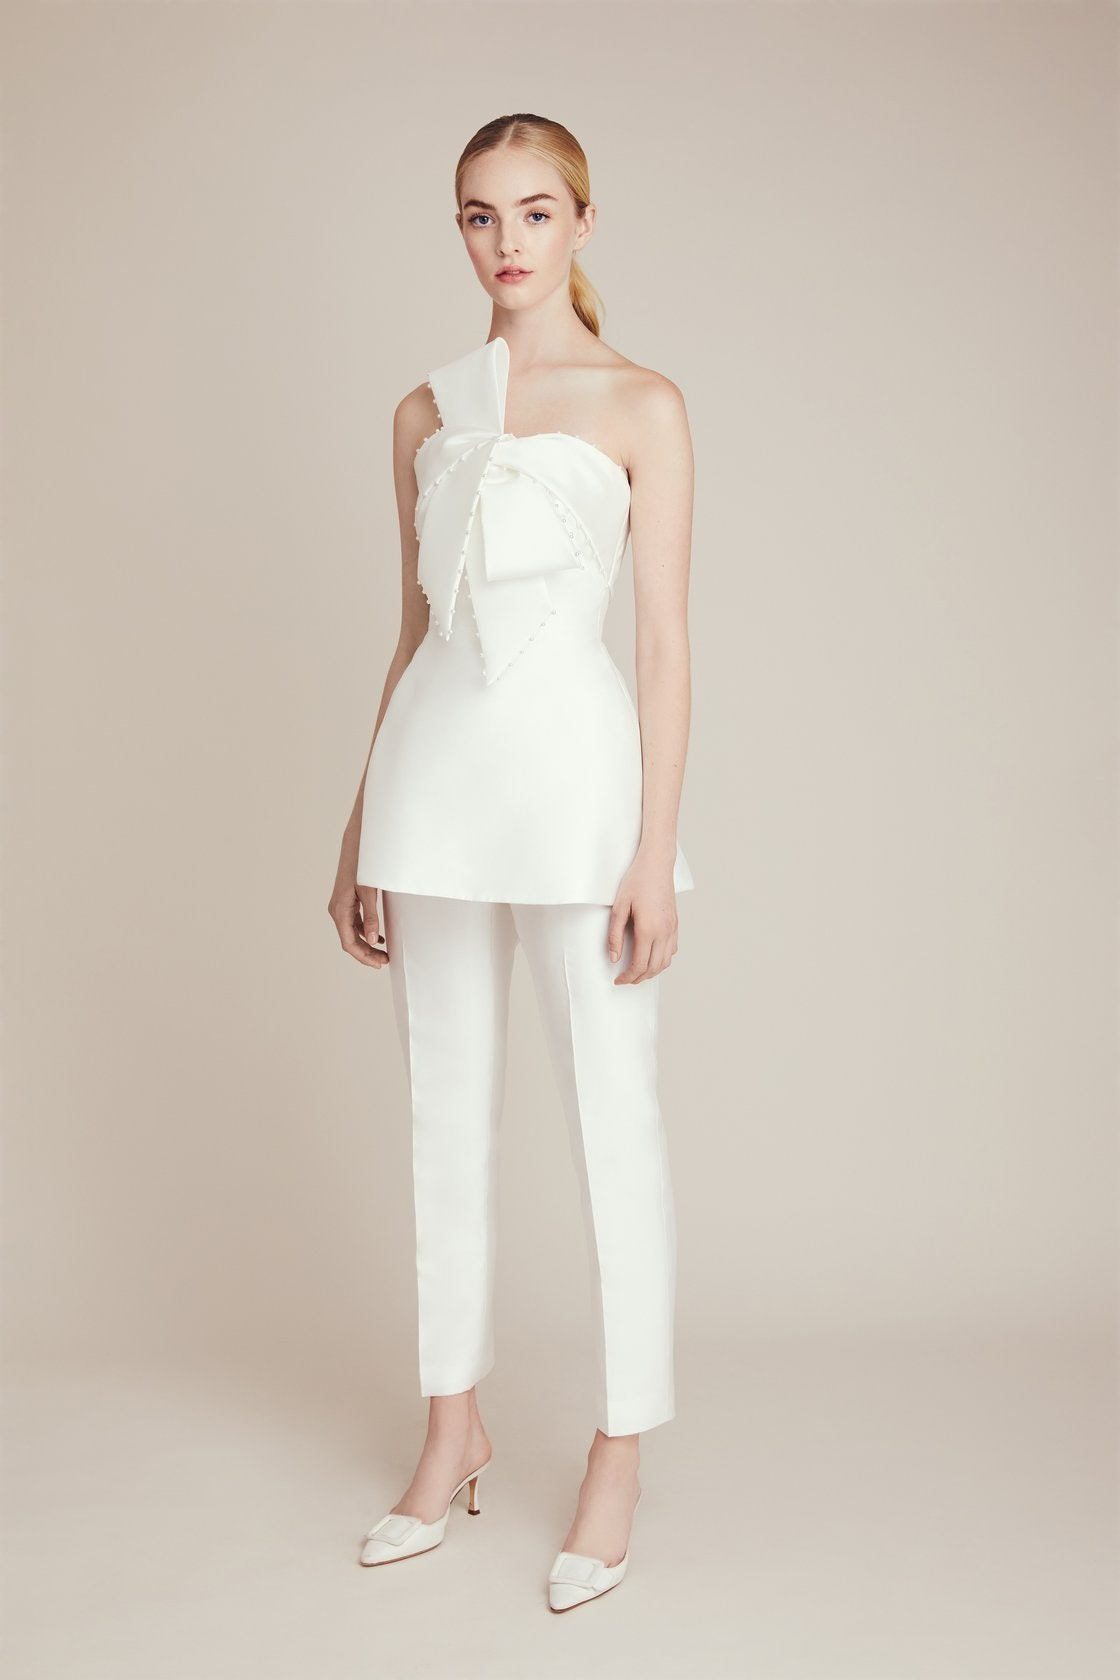 Bride is wearing cropped white pants with a peplum white shoulderless top with a bow